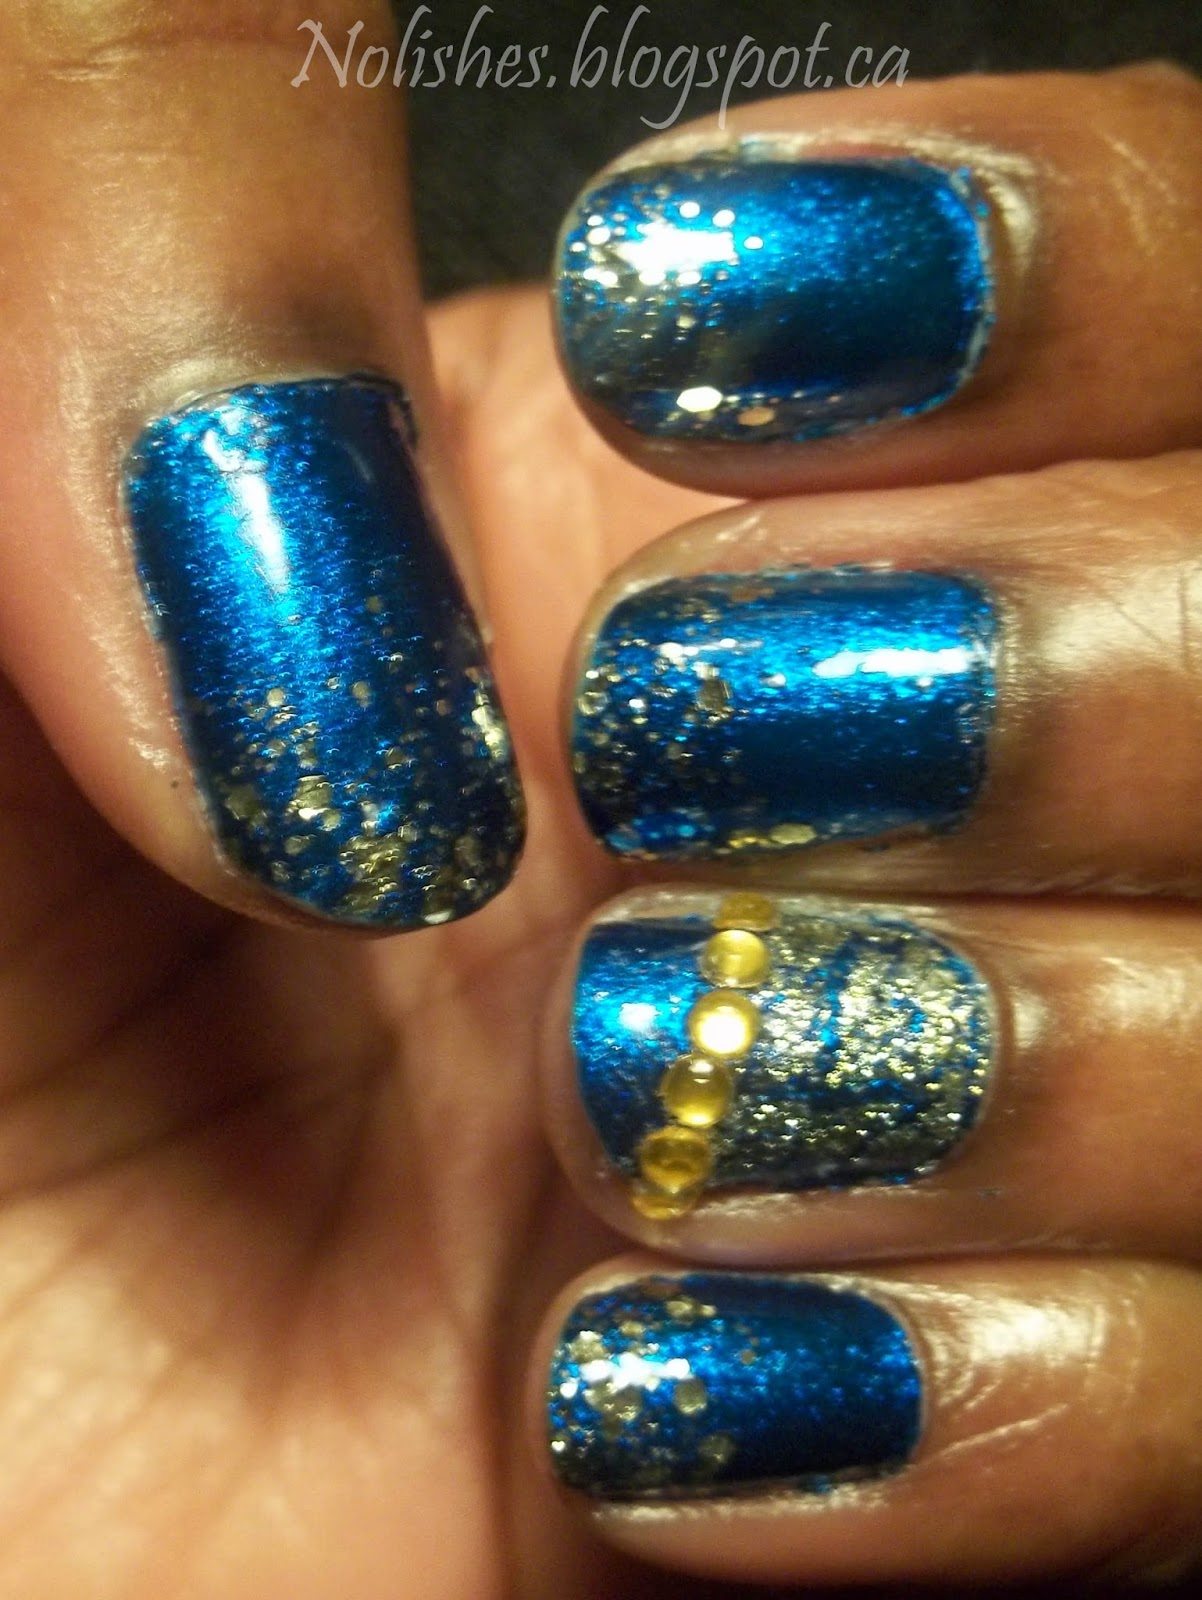 Ornate manicure featuring shimmery deep turquoise base polish, and a gold glitter gradient starting from the tips. Ring finger accent nail is partially covered with gold crackle topcoat, and a row of amber coloured nail art rhinestones